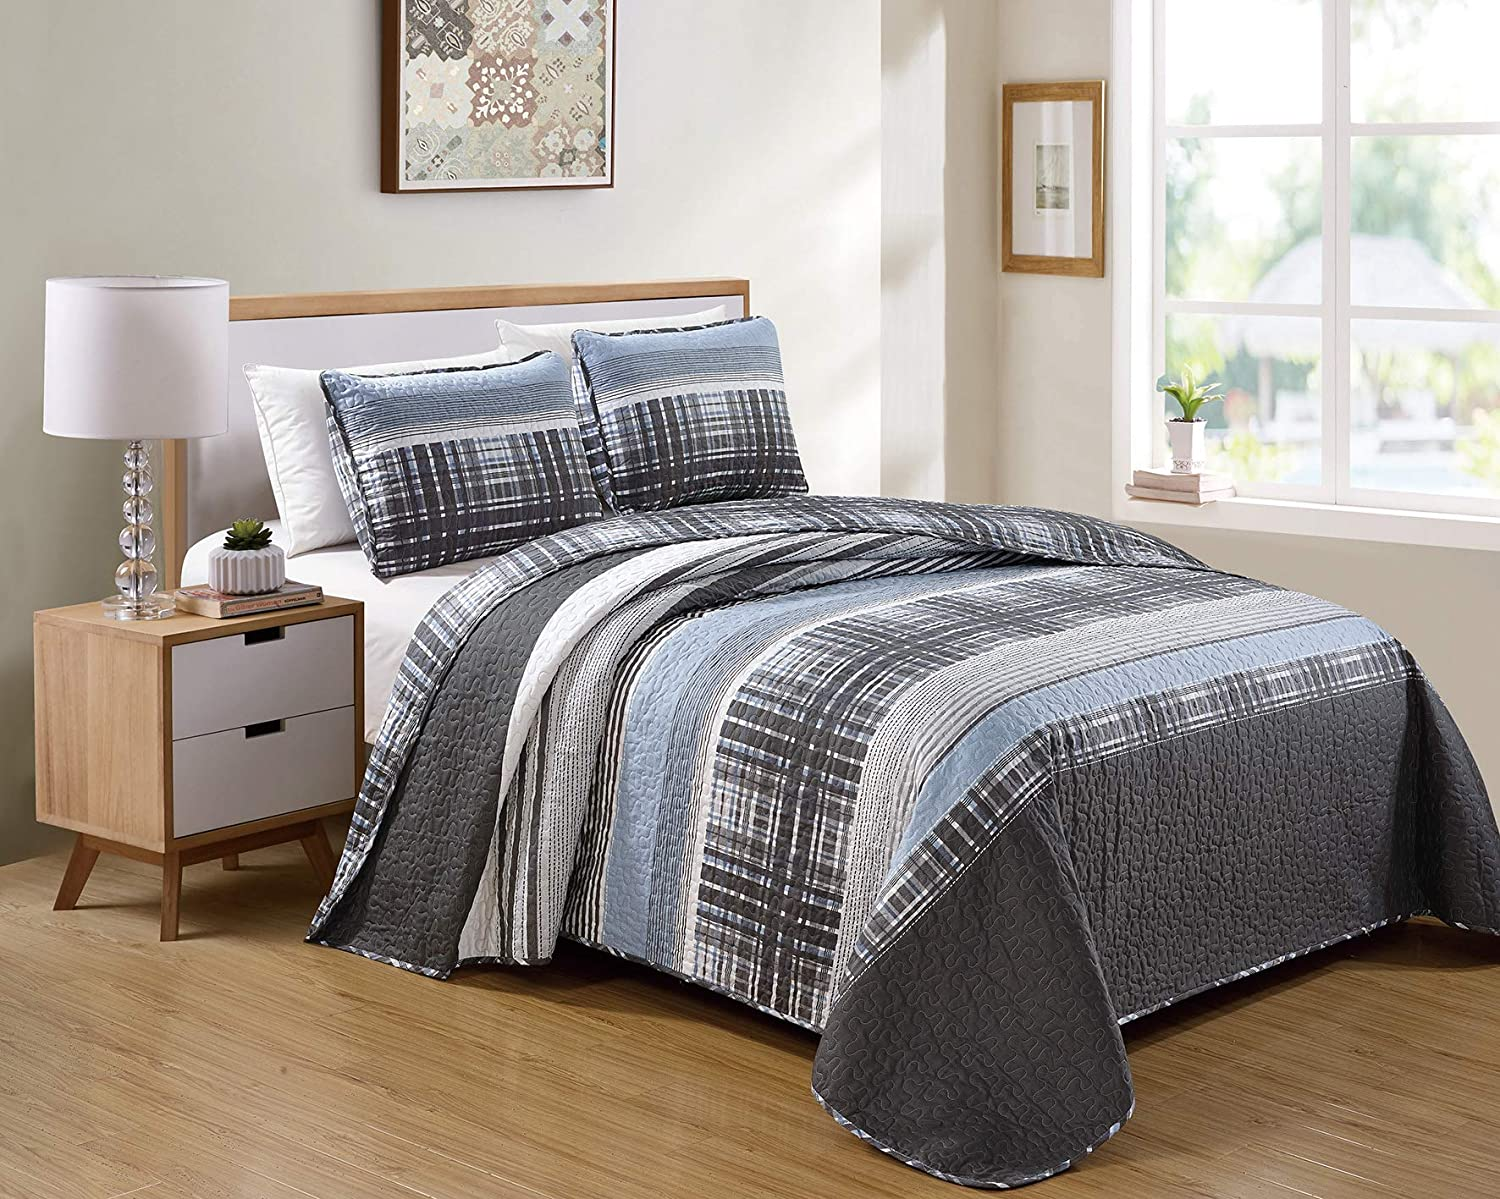 Luxury Home Collection 3 Piece King/California King Quilted Reversible Coverlet Bedspread Set Modern Plaid Blue Gray White